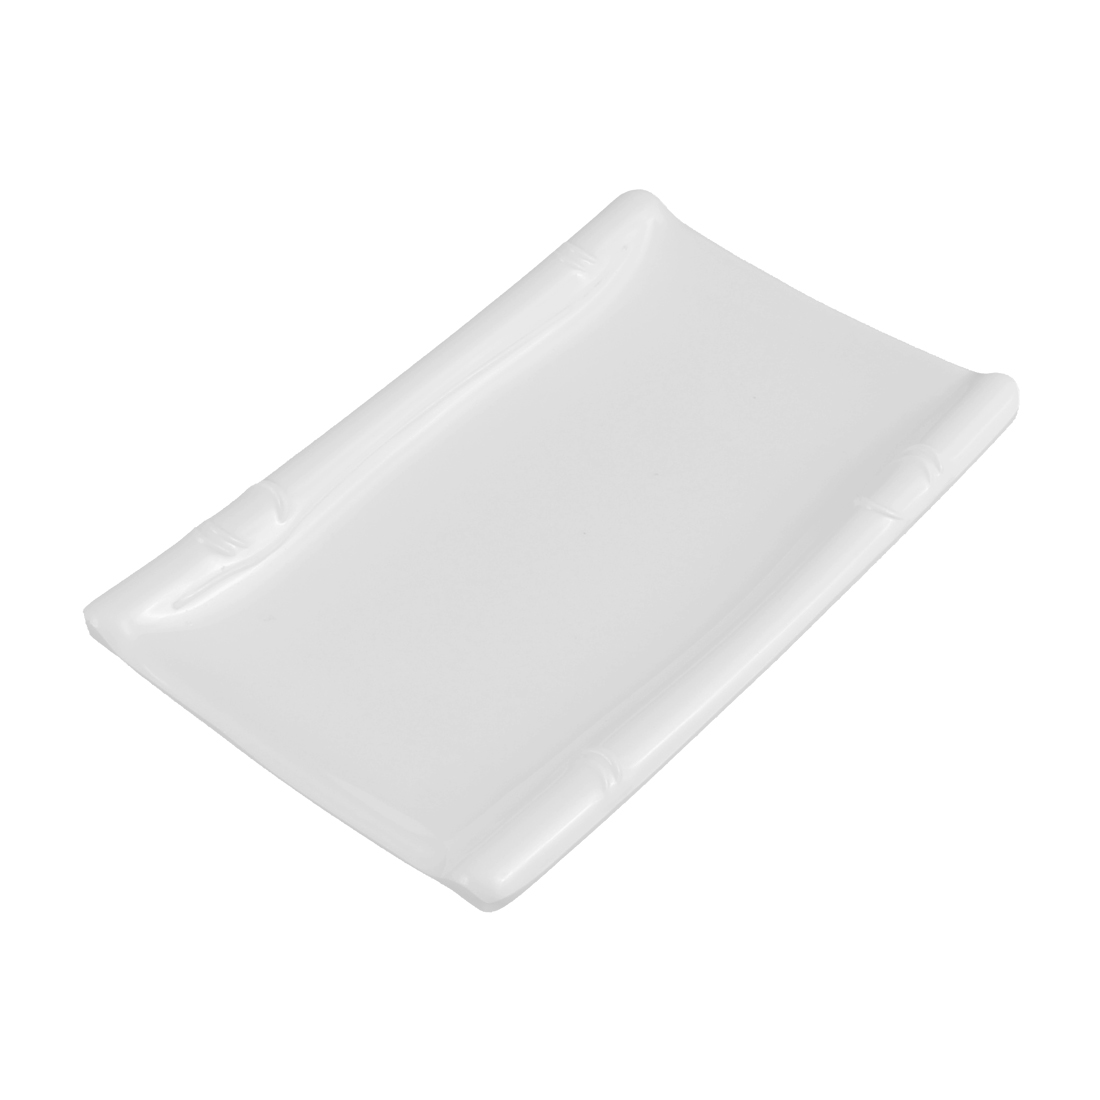 Kitchen Restaurant Plastic Rectangle Design Plate Dish Tableware White